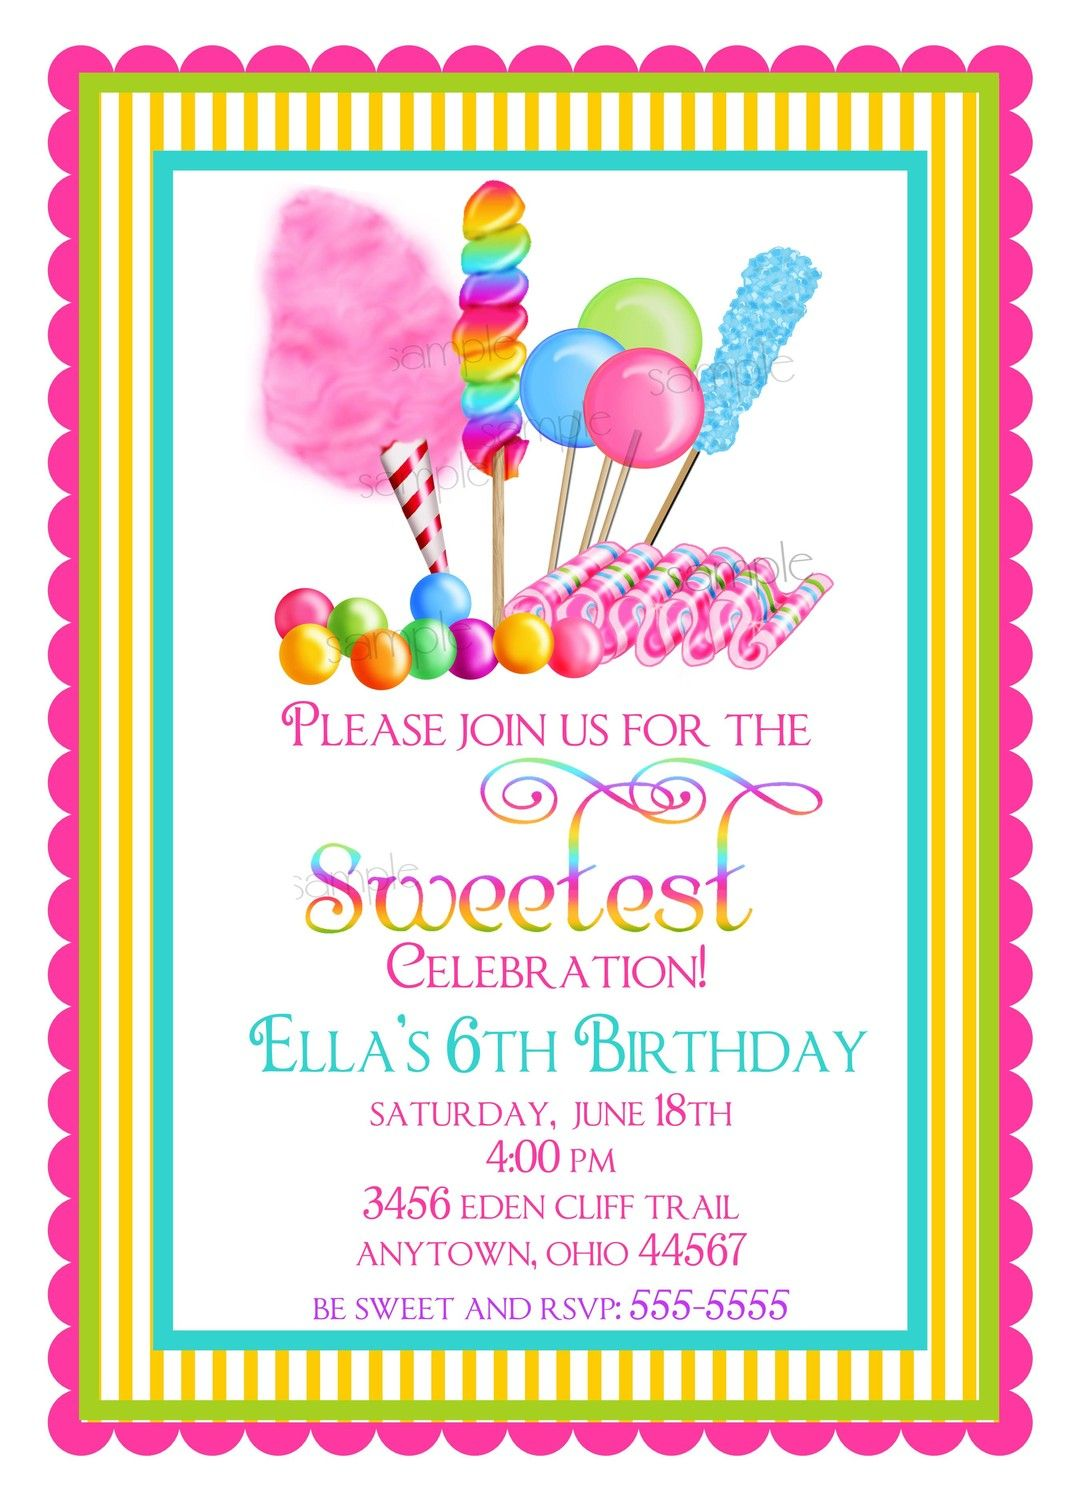 Candyland Birthday party invitations Sweet Shop Birthday party – Candyland Birthday Party Invitations